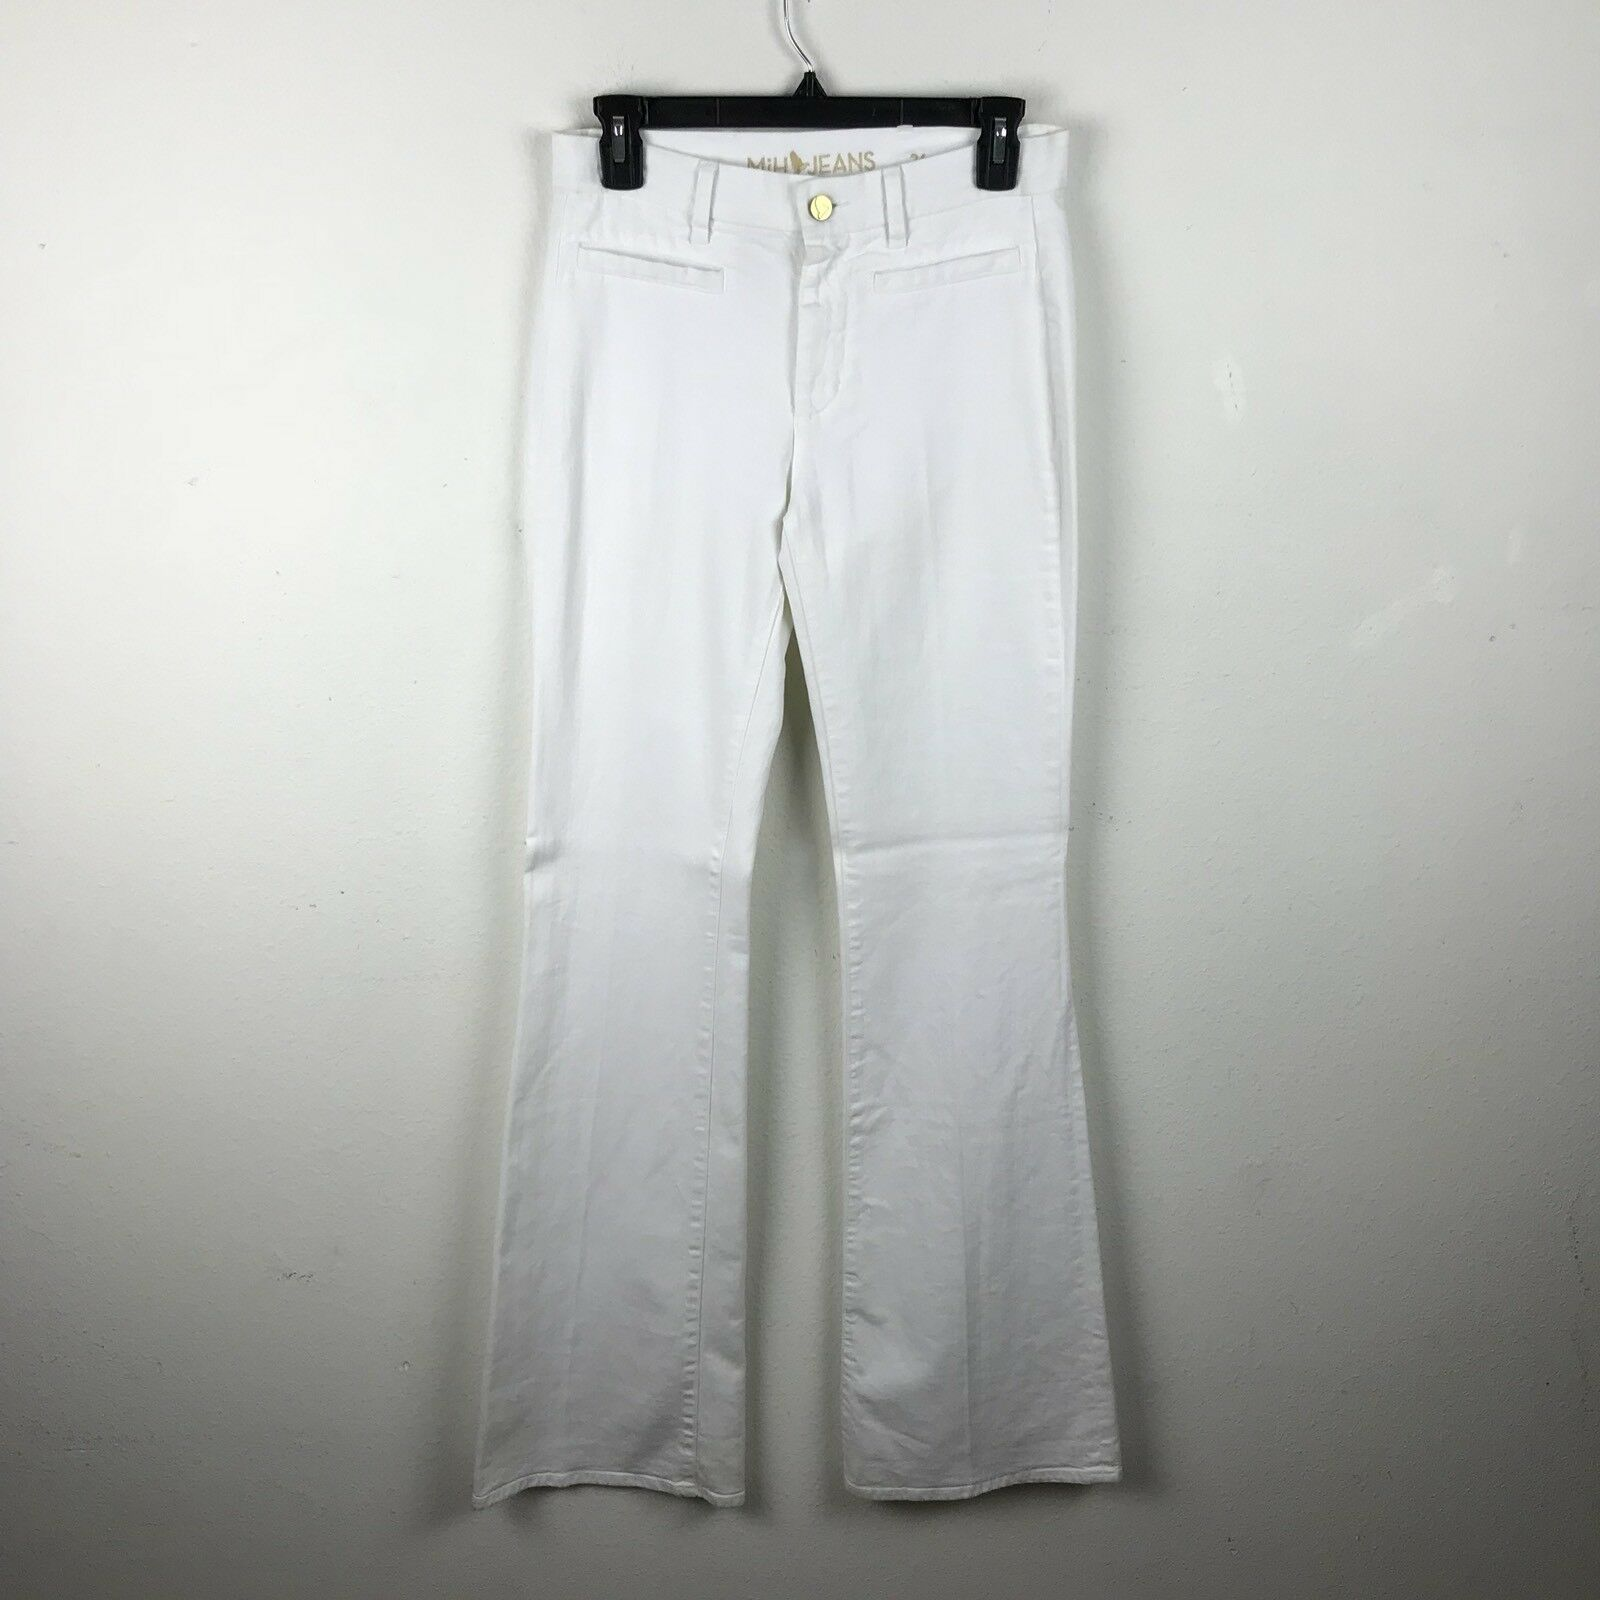 Product Image 1 - MIH Jeans Size 26 Womens